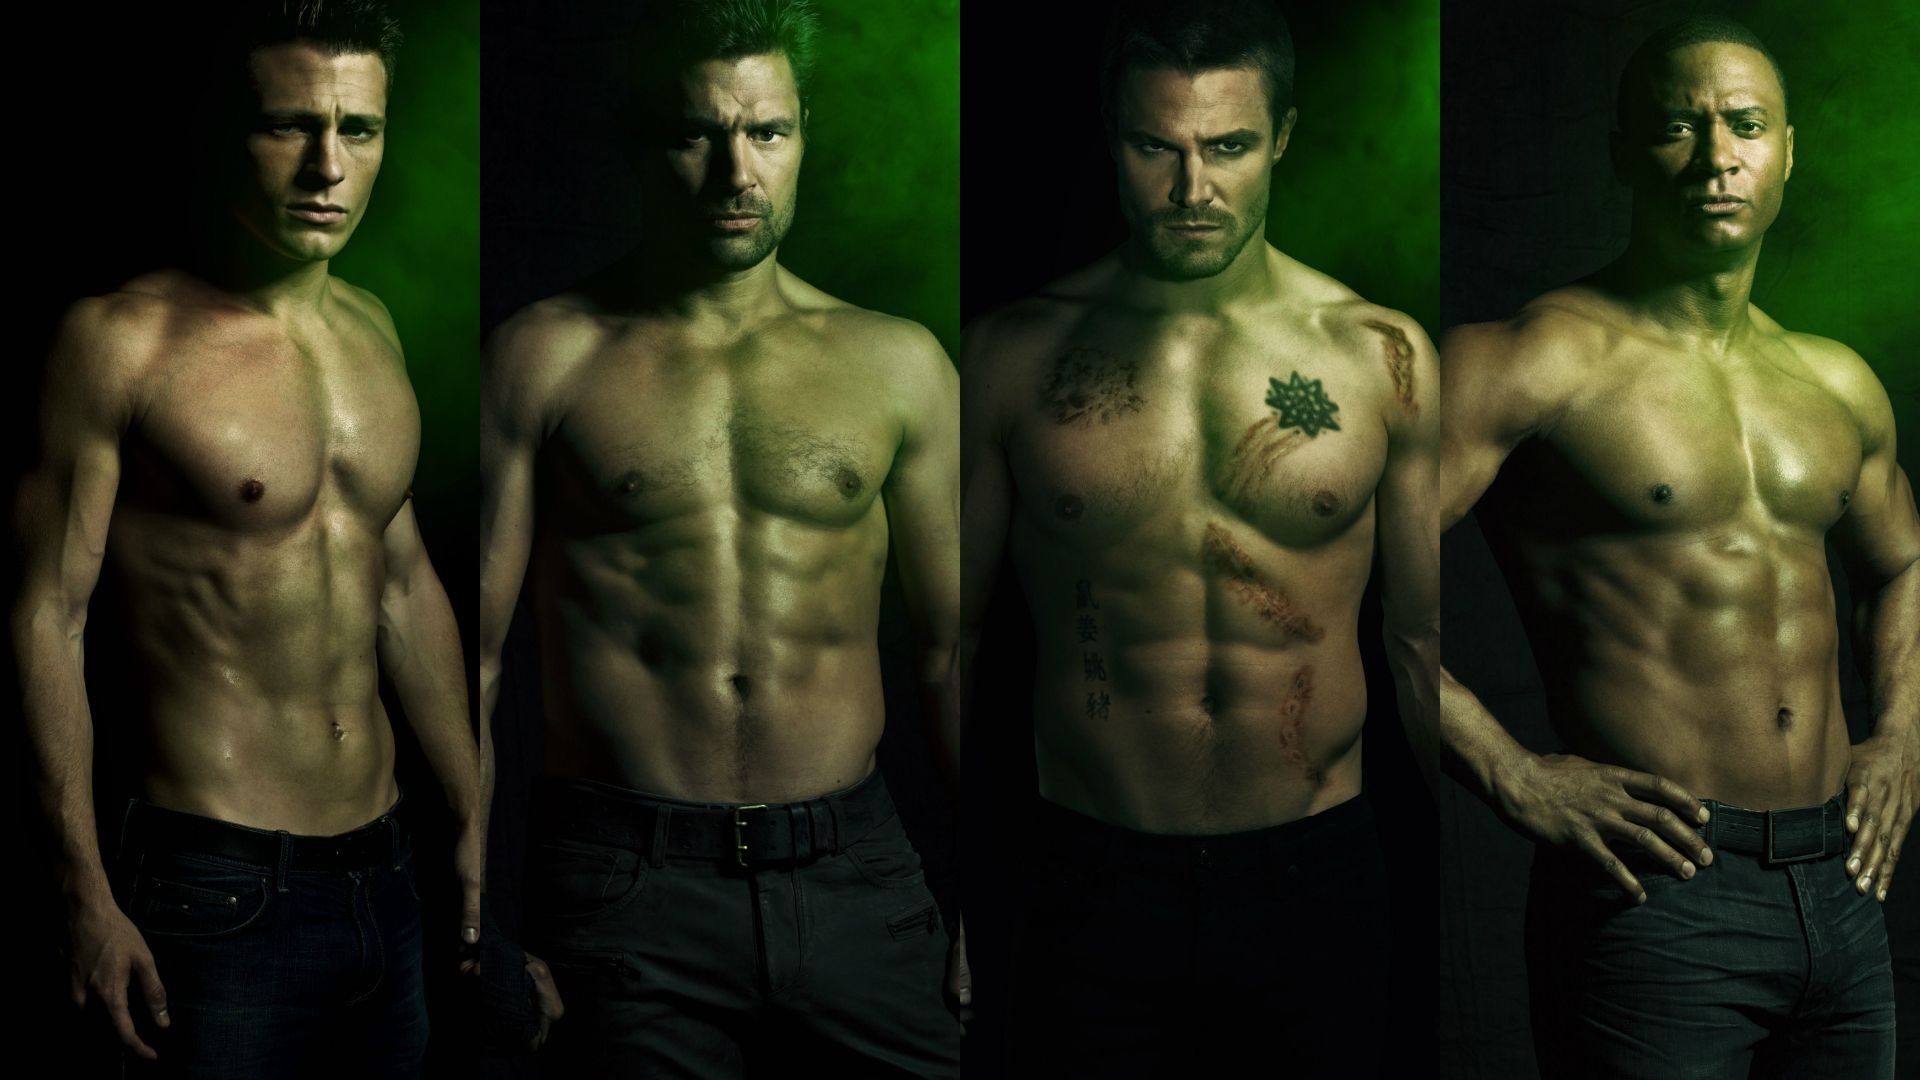 Arrow TV Series Actors Abs Wallpaper 1920x1080